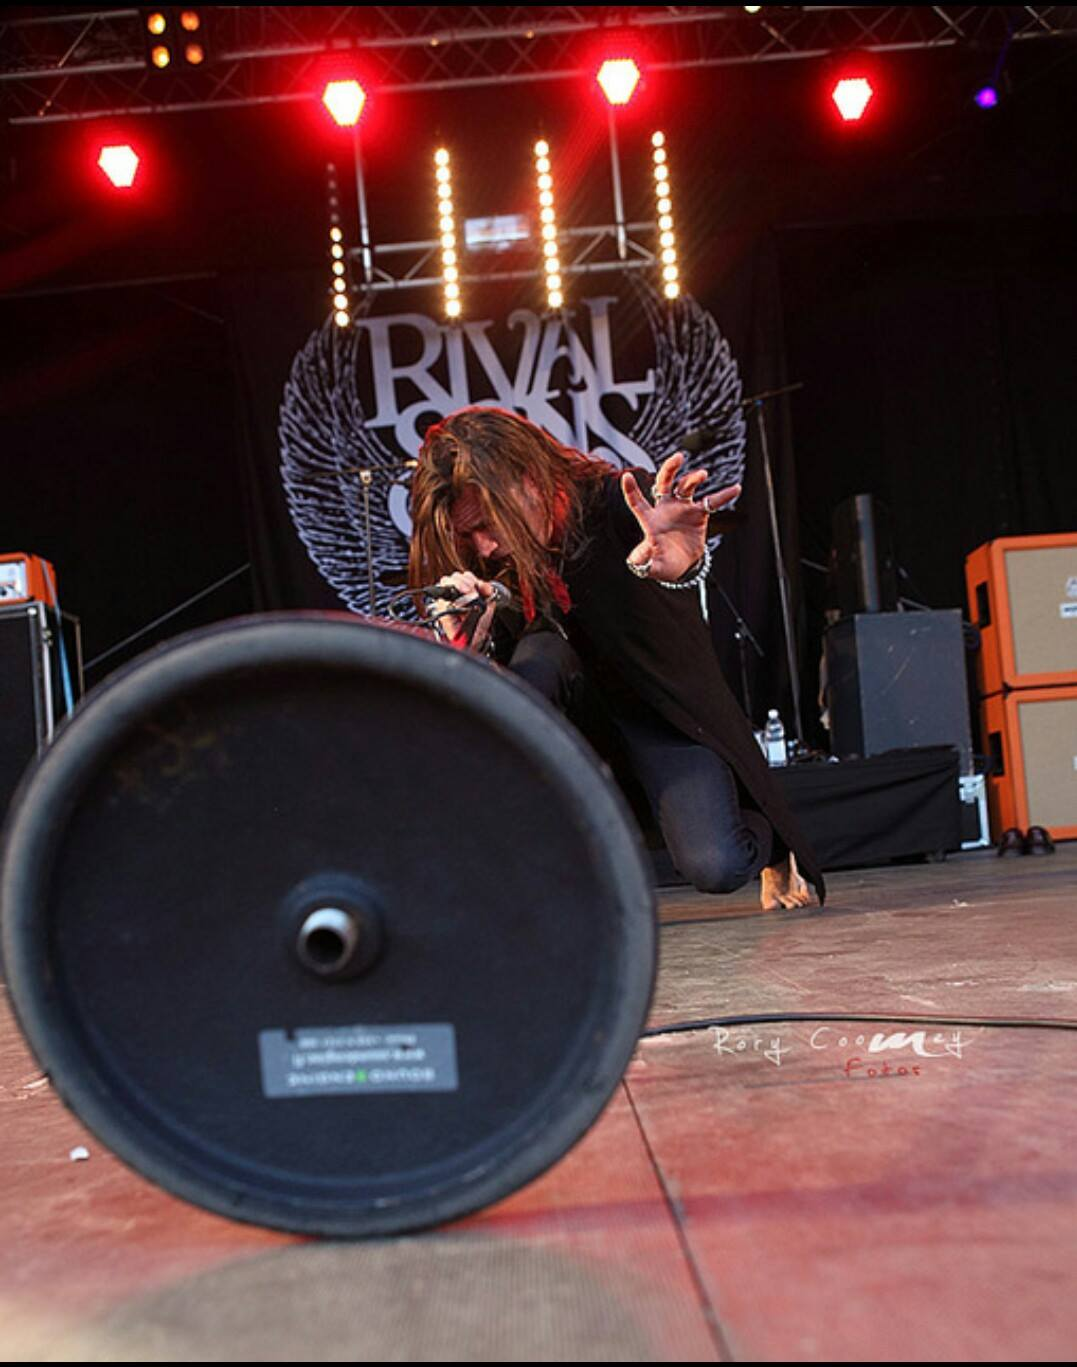 rival-sons---rock-the-beach_26303460855_o.jpg